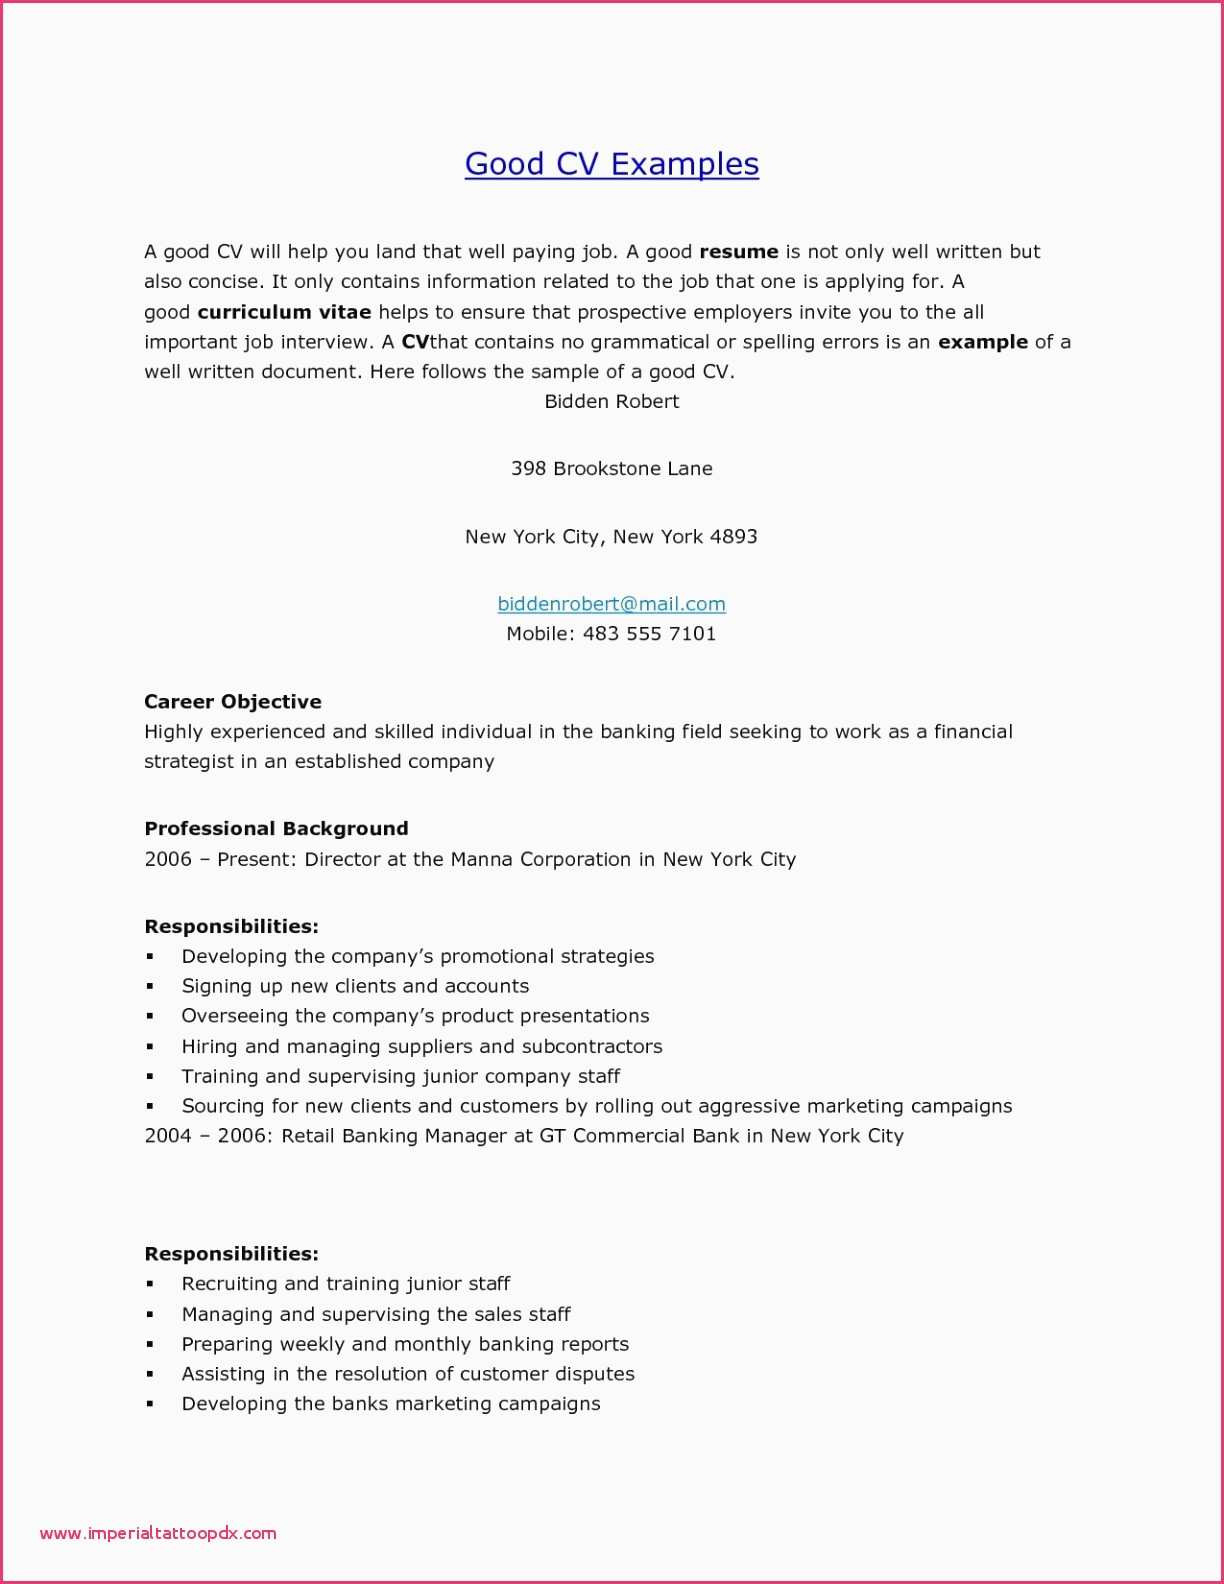 Resume for Marketing Job - Cover Letter New Job Hiring Letter format New Resume Cover Letter